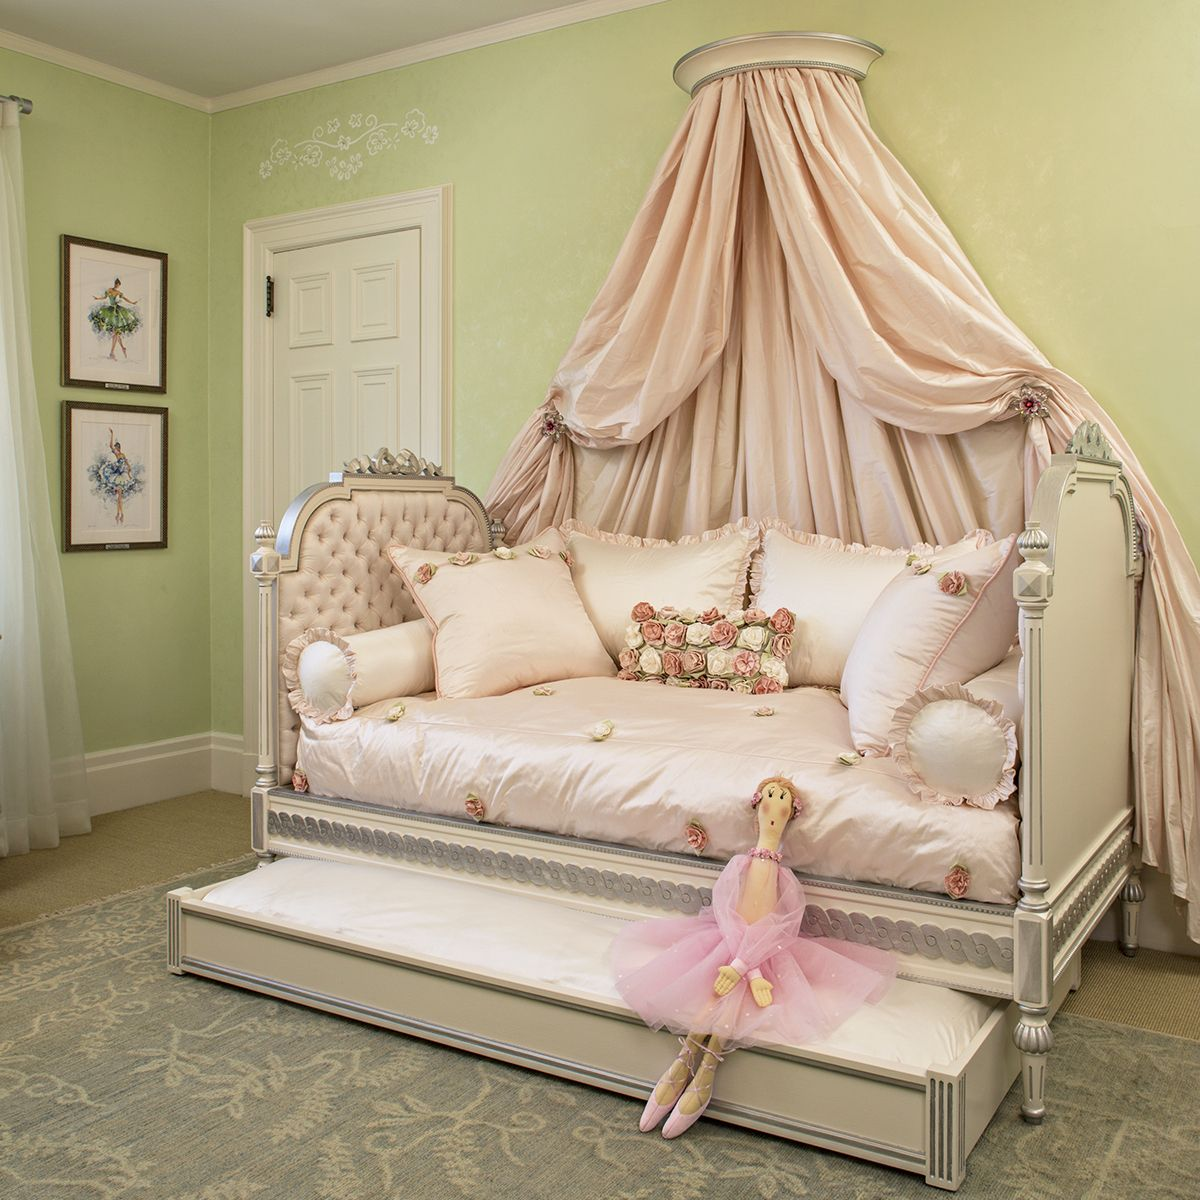 - Sweet-daybed-bedding-ideas-gray-tufted-daybed-set-white-fabric